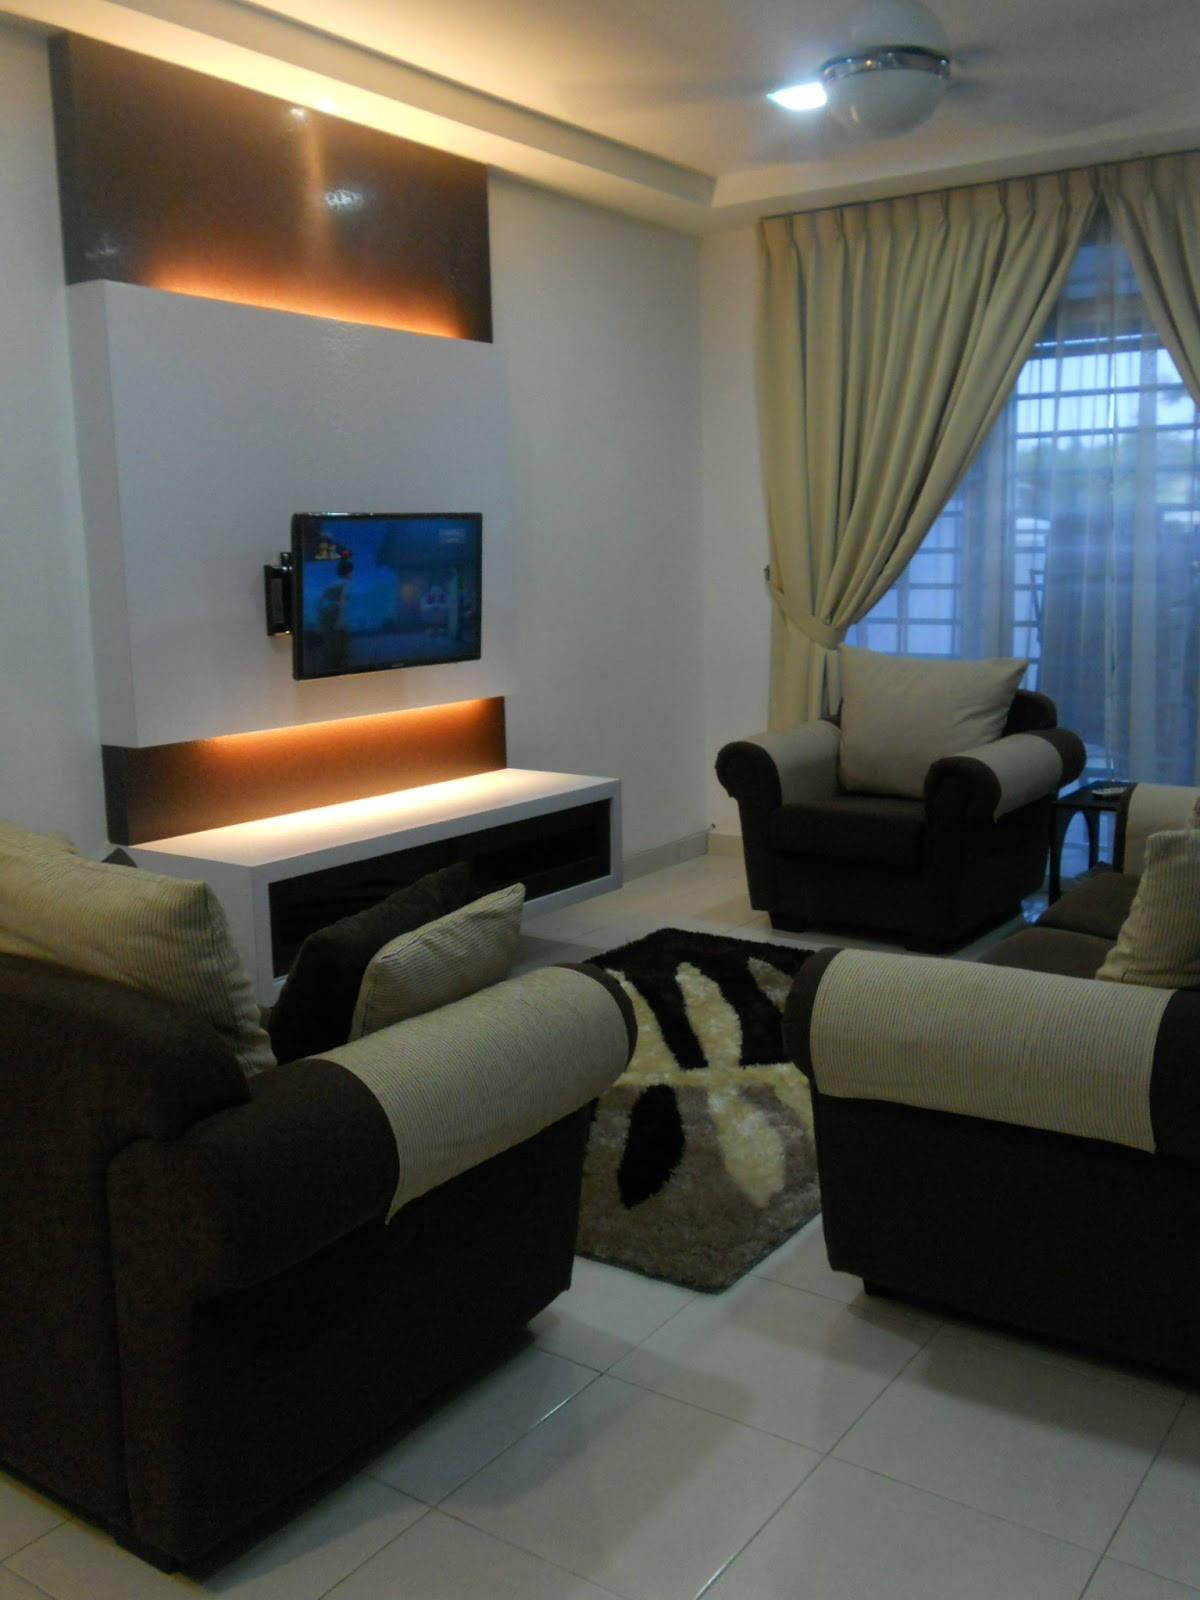 tema living room: coklat gelap+putih+coklat cair.warna neutral+earth  title=